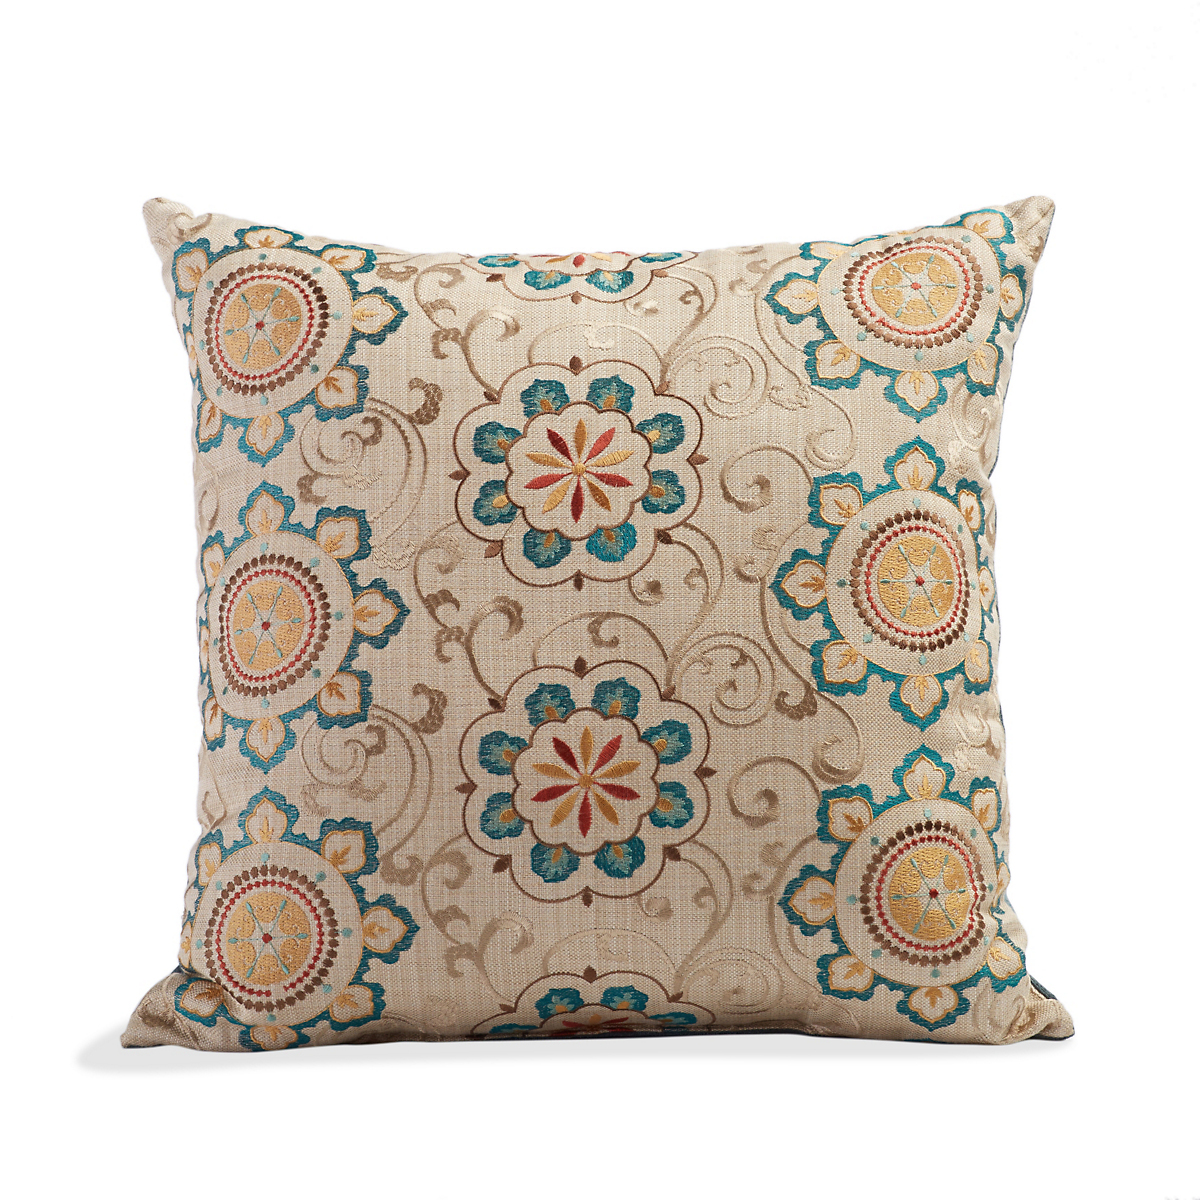 Mirabella Floral Medallion Pillow